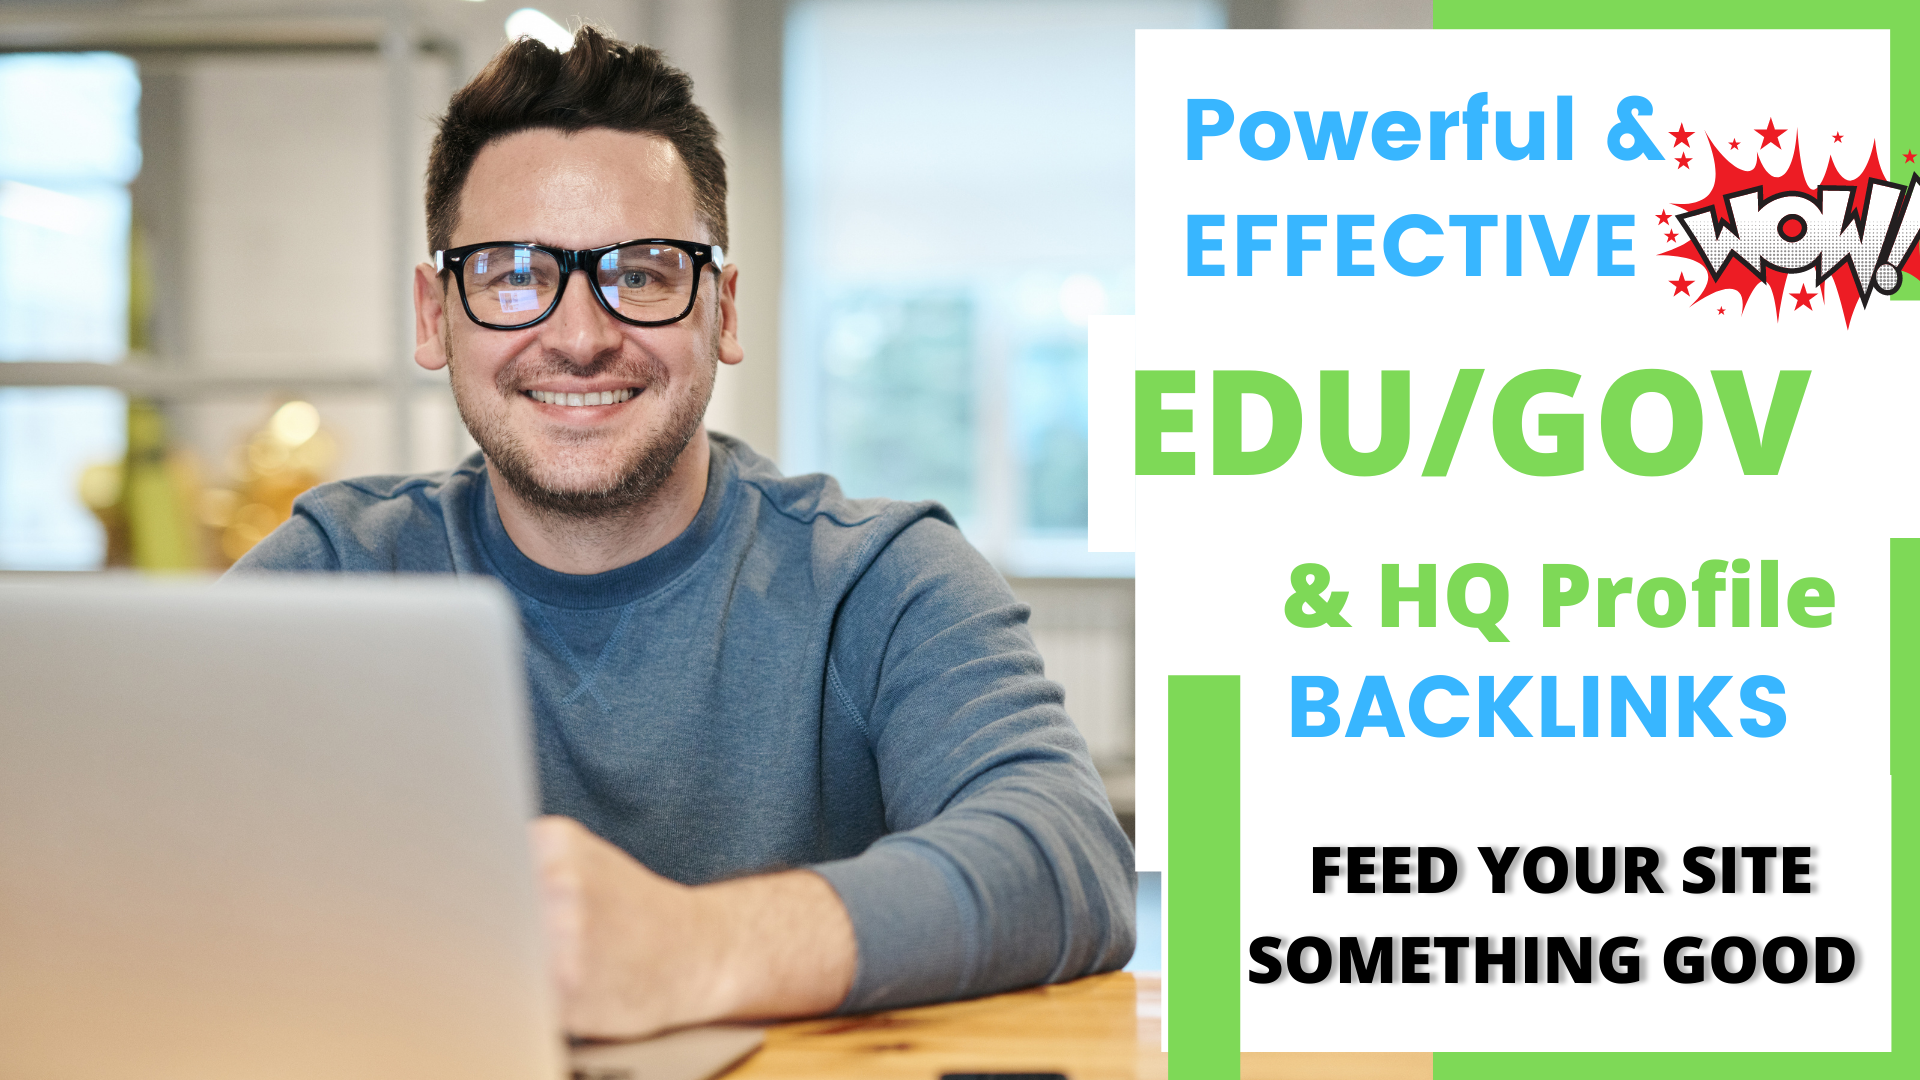 20 plus EDU/GOV & 100 DOFOLLOW HQ Profile Backlinks Premium Offer - Feed your site something good